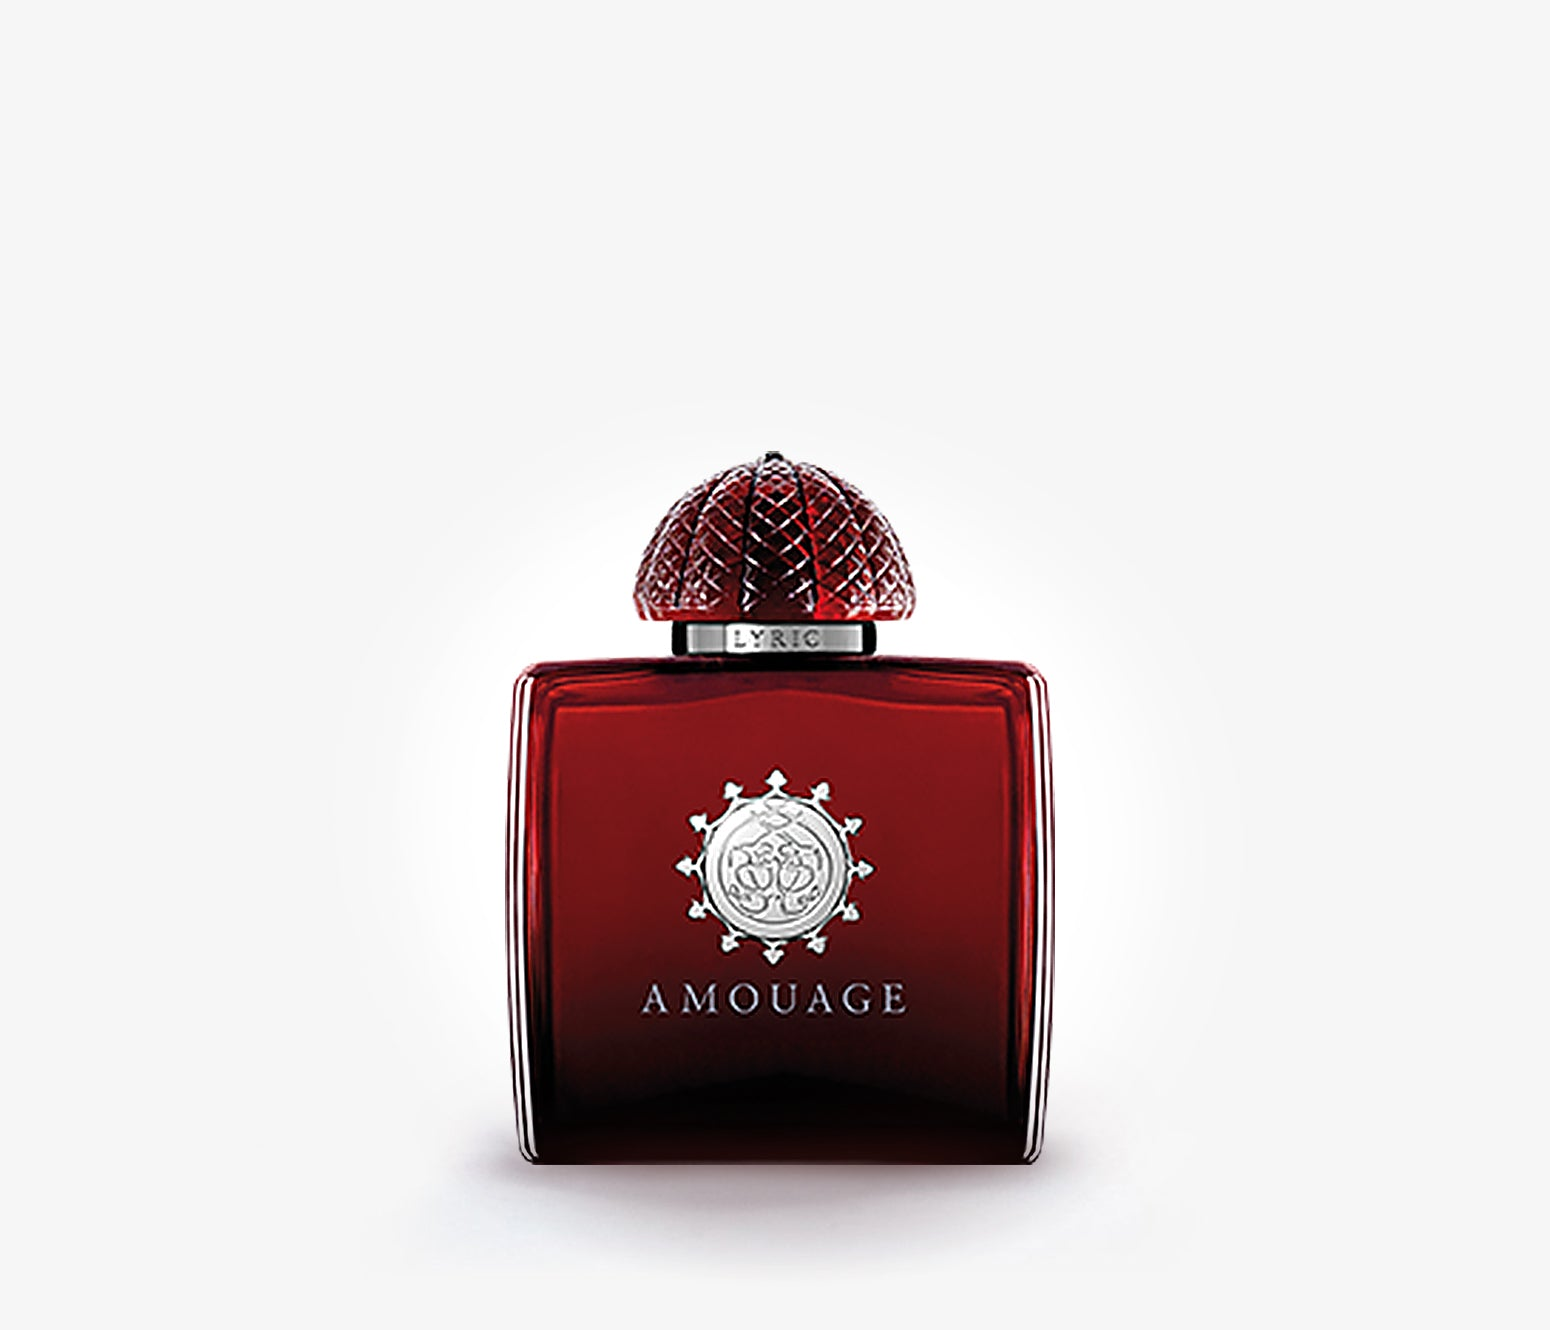 Amouage - Lyric Woman - 100ml - KYG4592 - product image - Fragrance - Les Senteurs